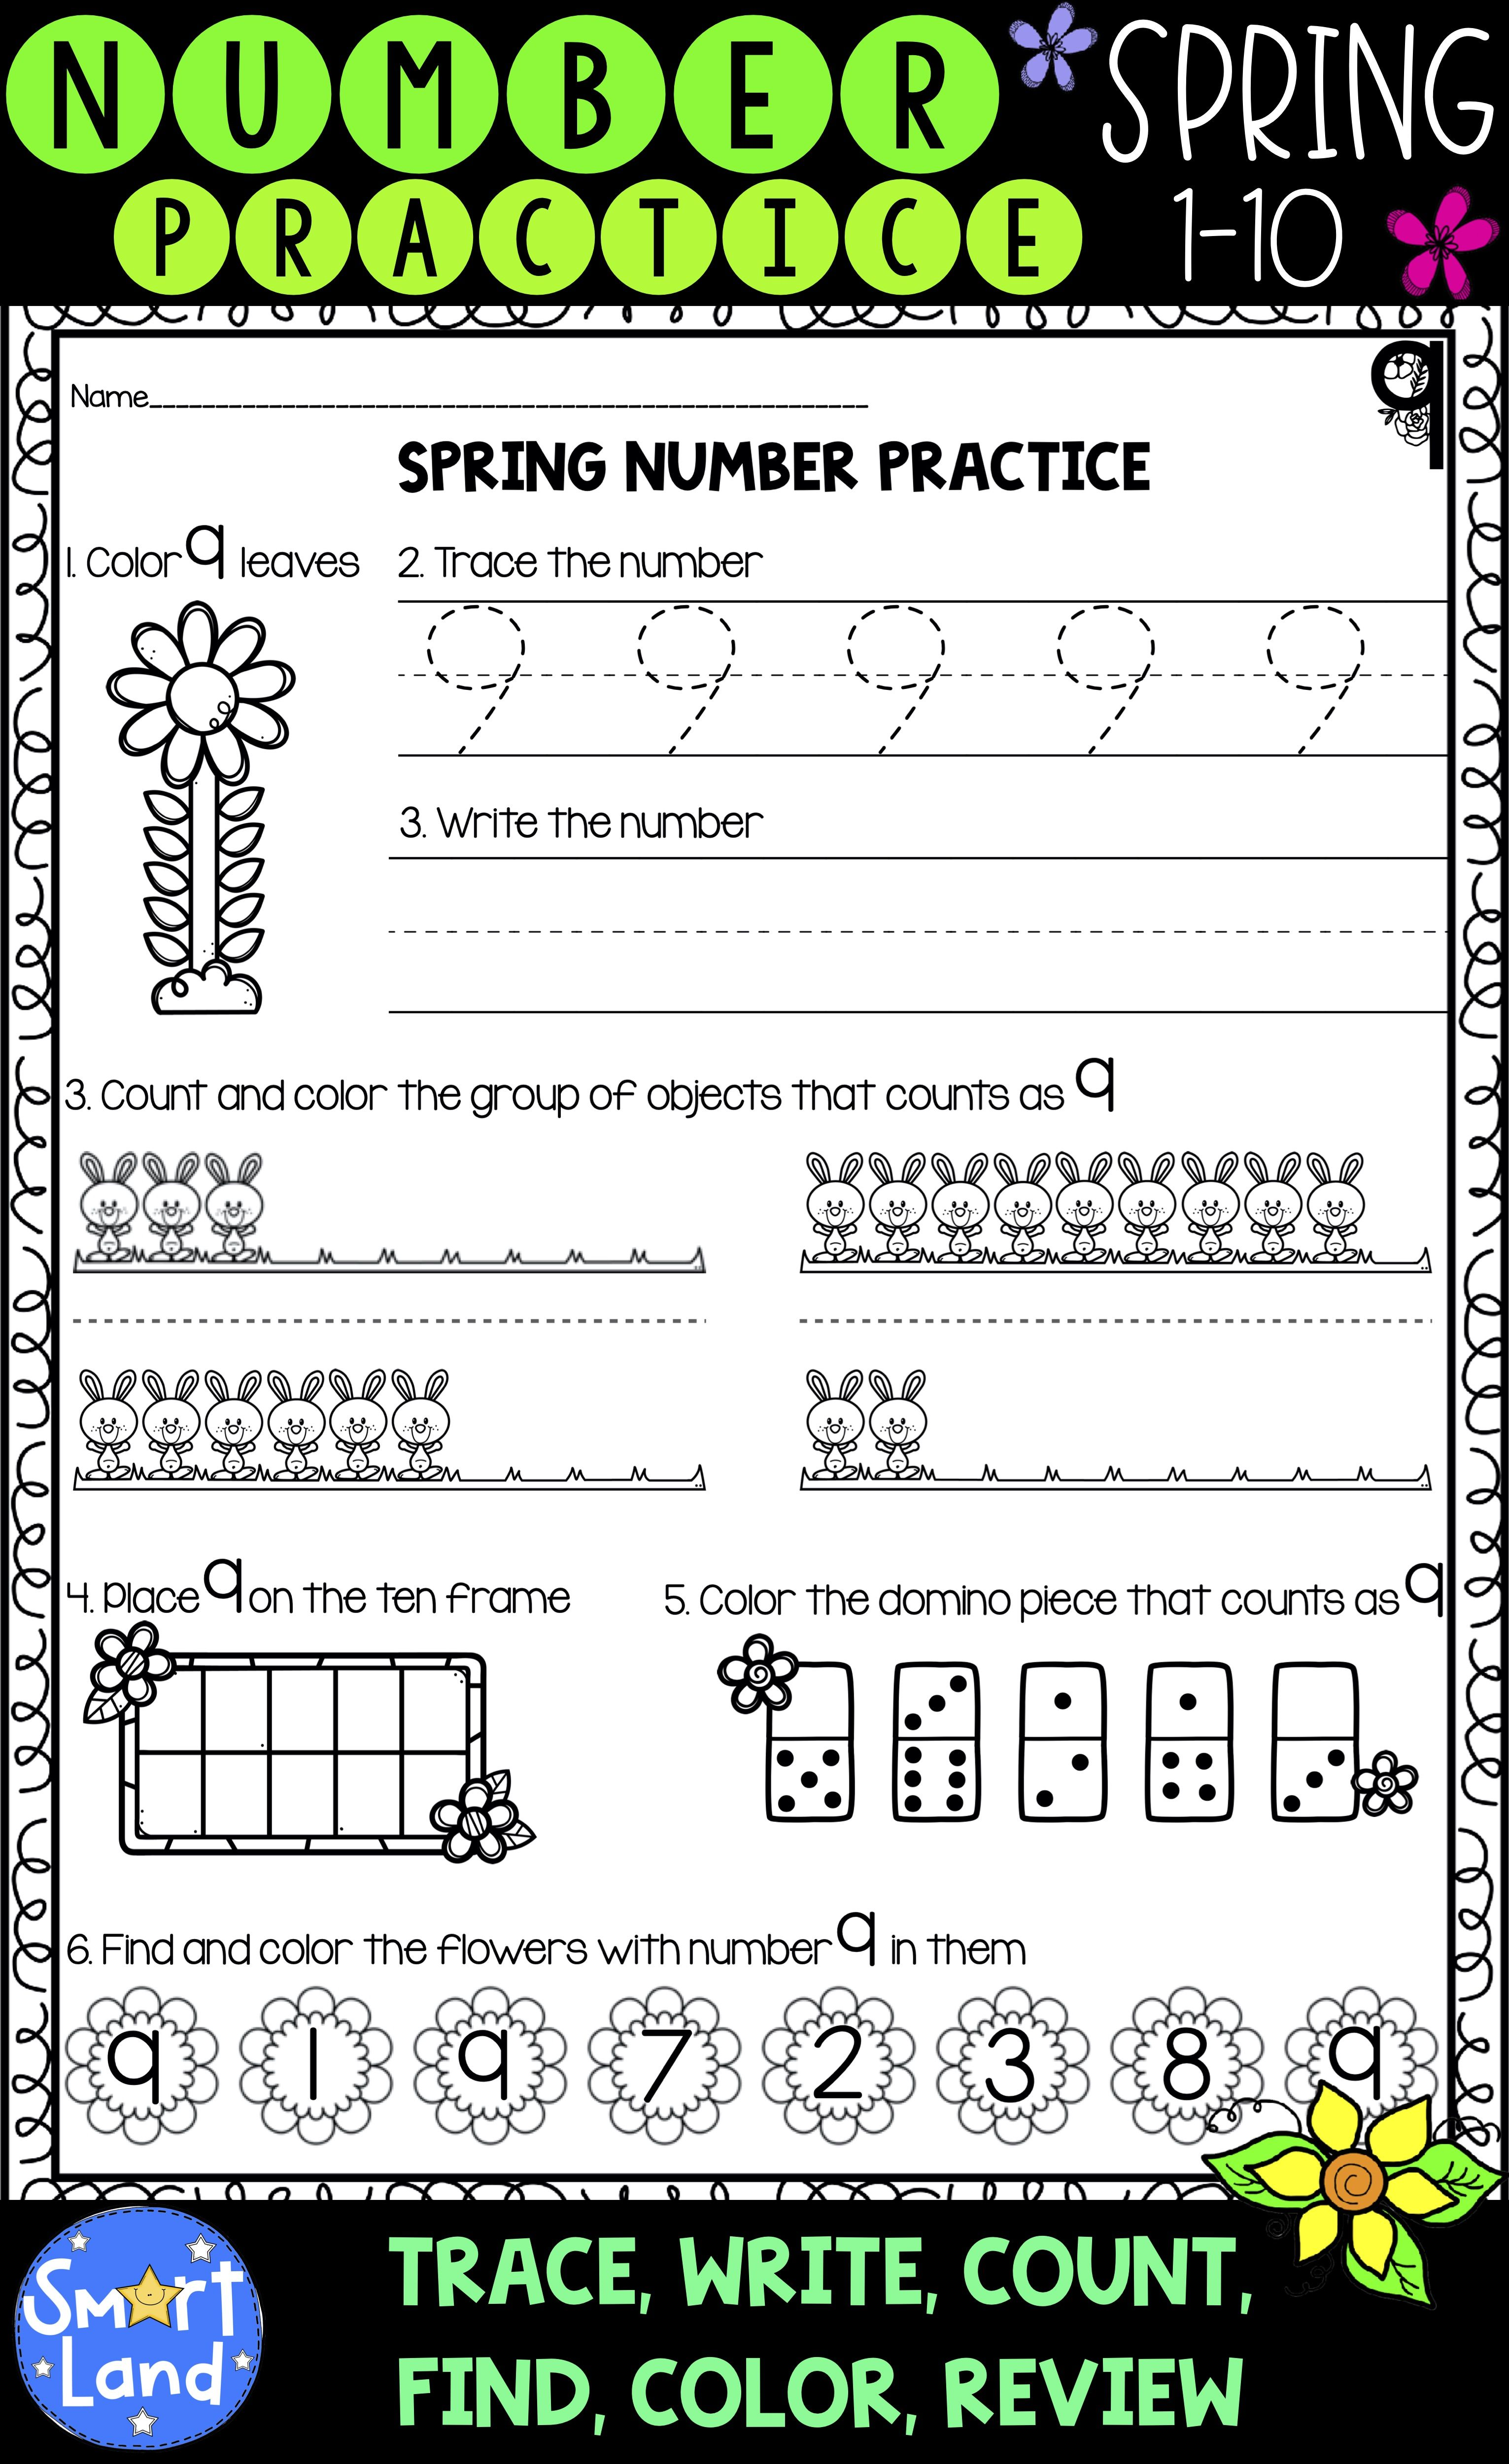 Number Practice 1 10 Spring Edition